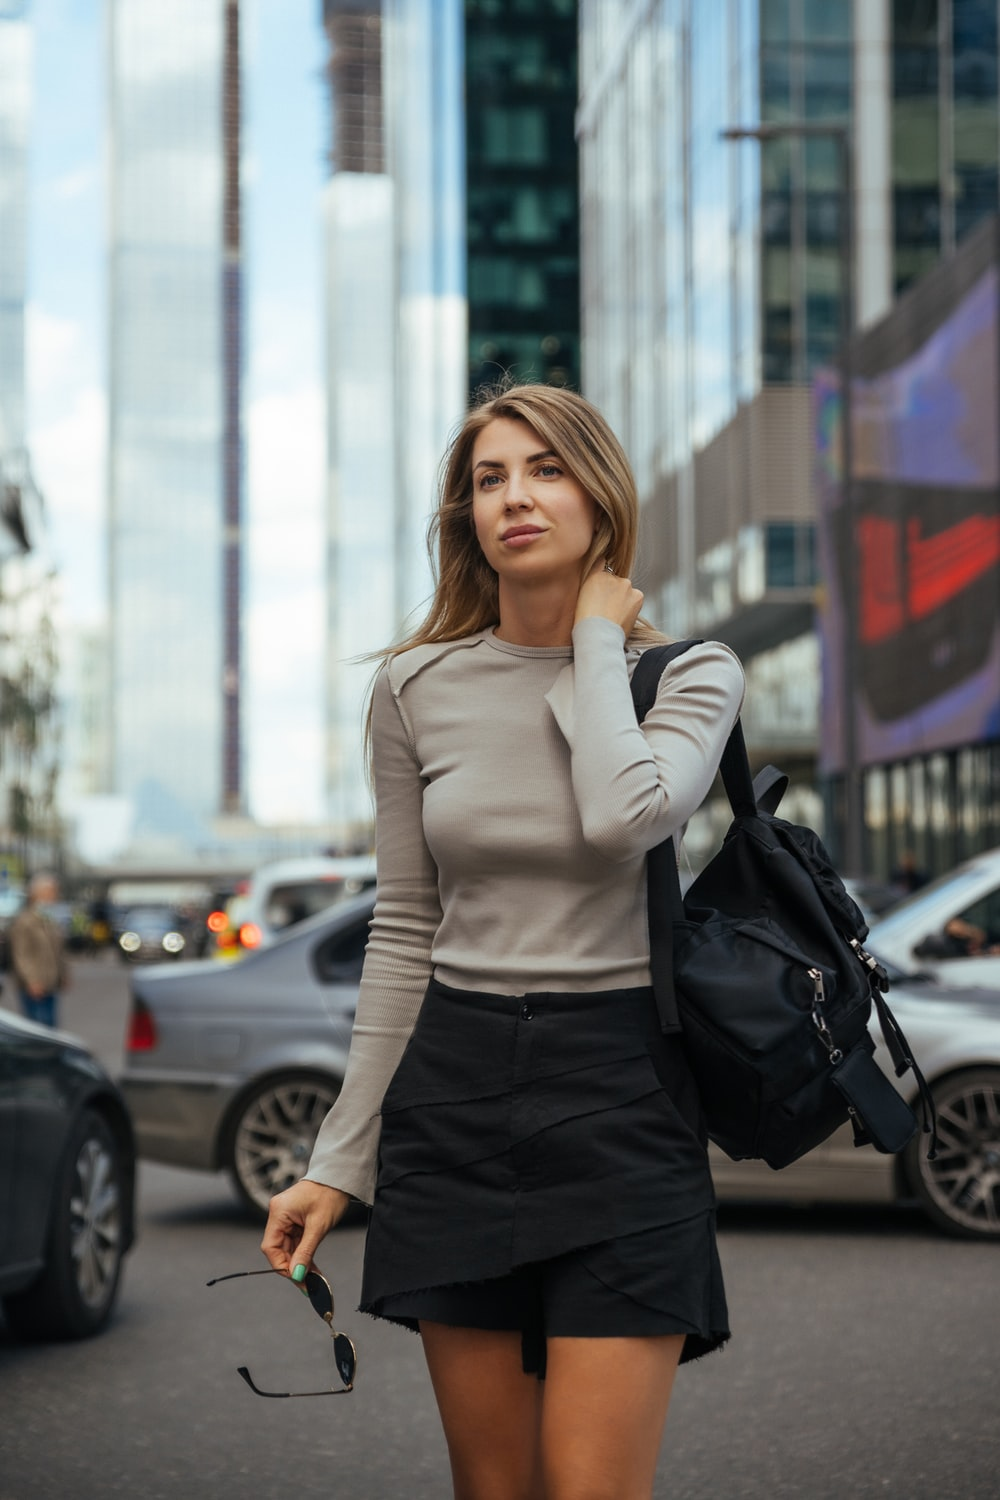 woman in white long sleeve shirt and black skirt standing on sidewalk during daytime